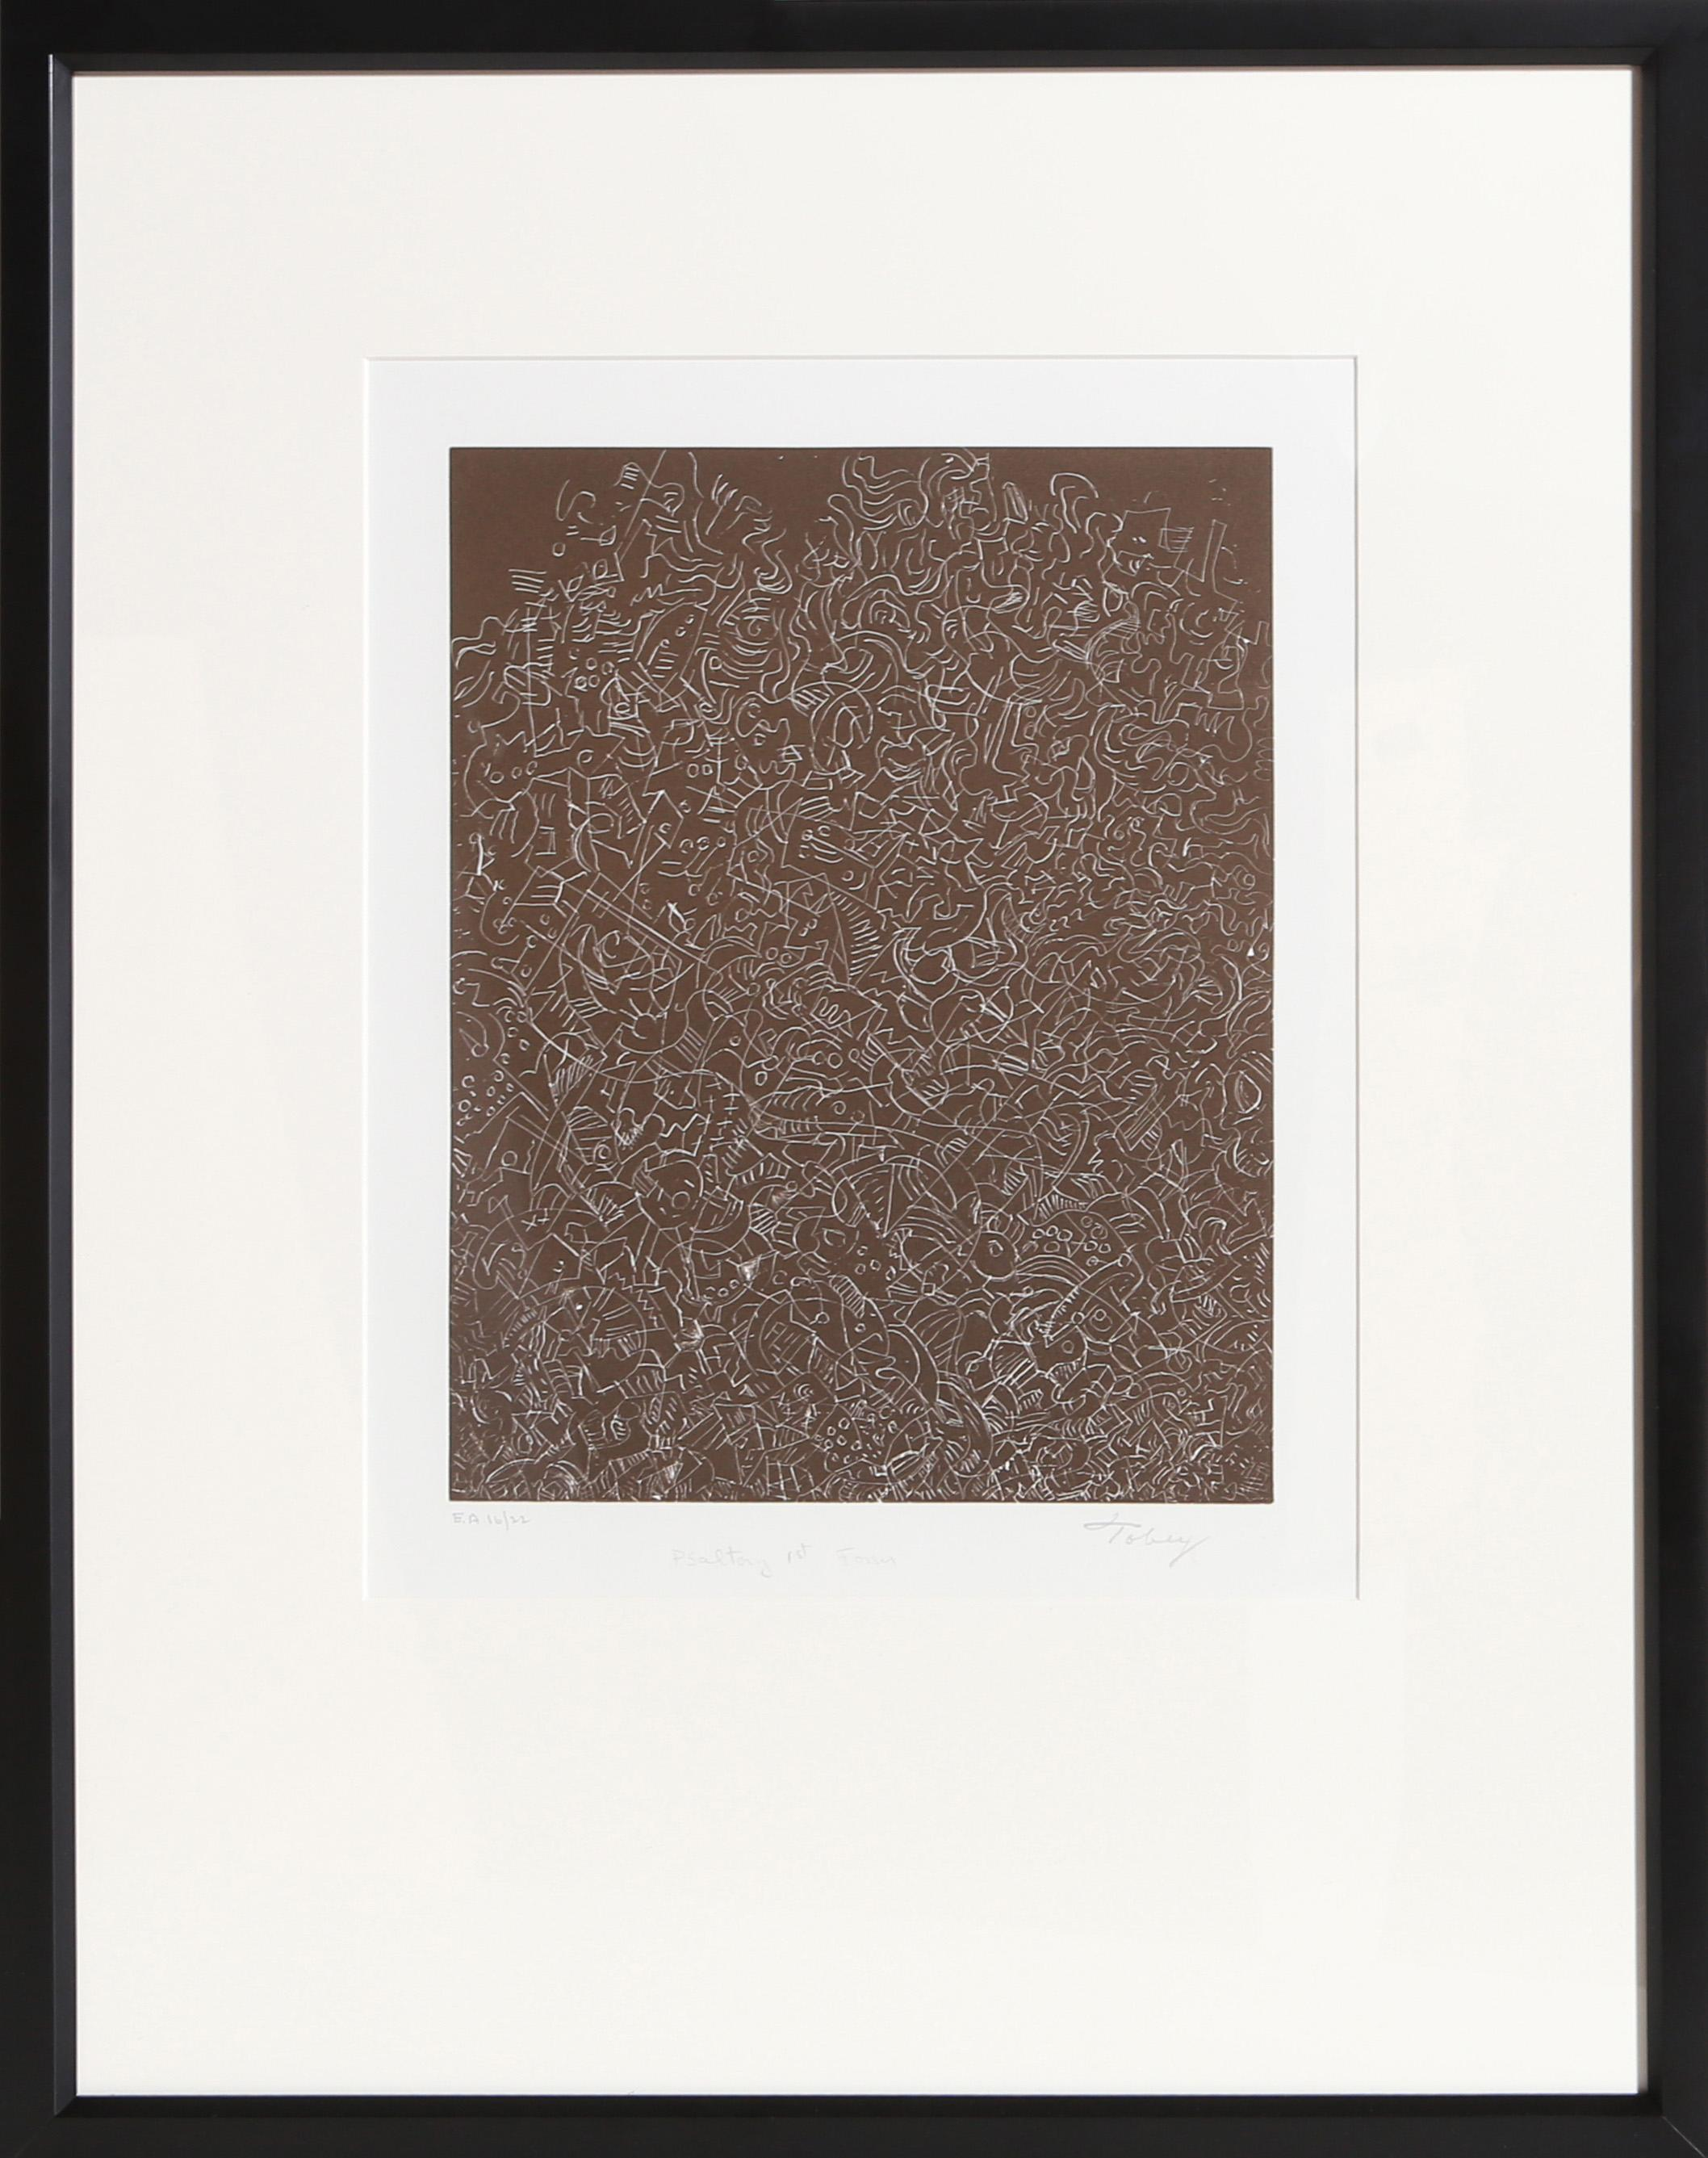 Mark Tobey, Psaltery, 1st Form, Etching